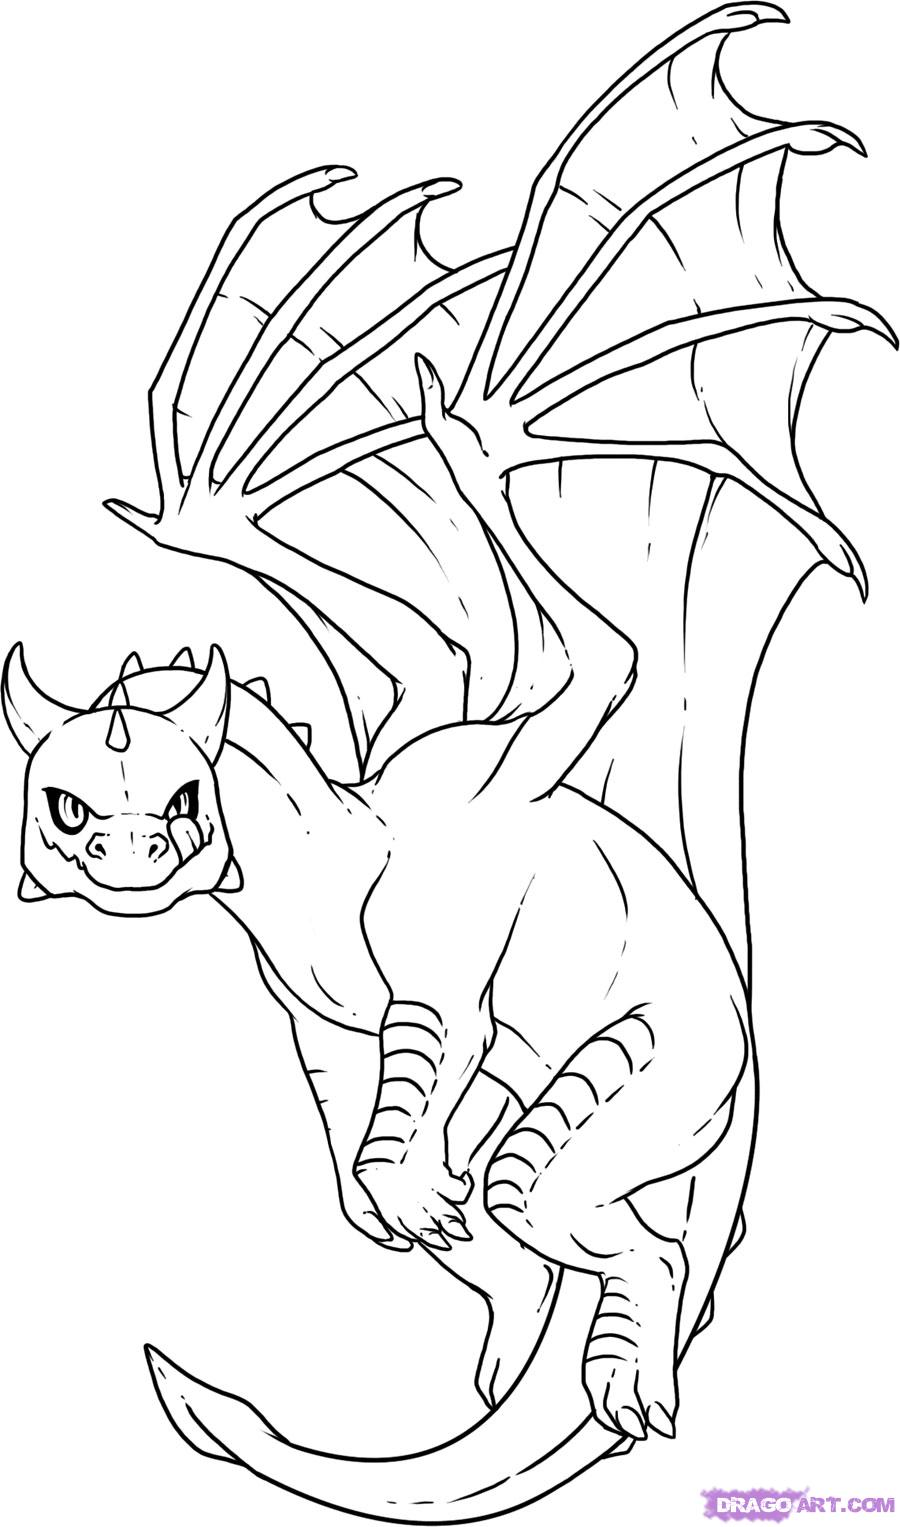 Baby Dragons Drawing at GetDrawings.com | Free for personal use Baby ...